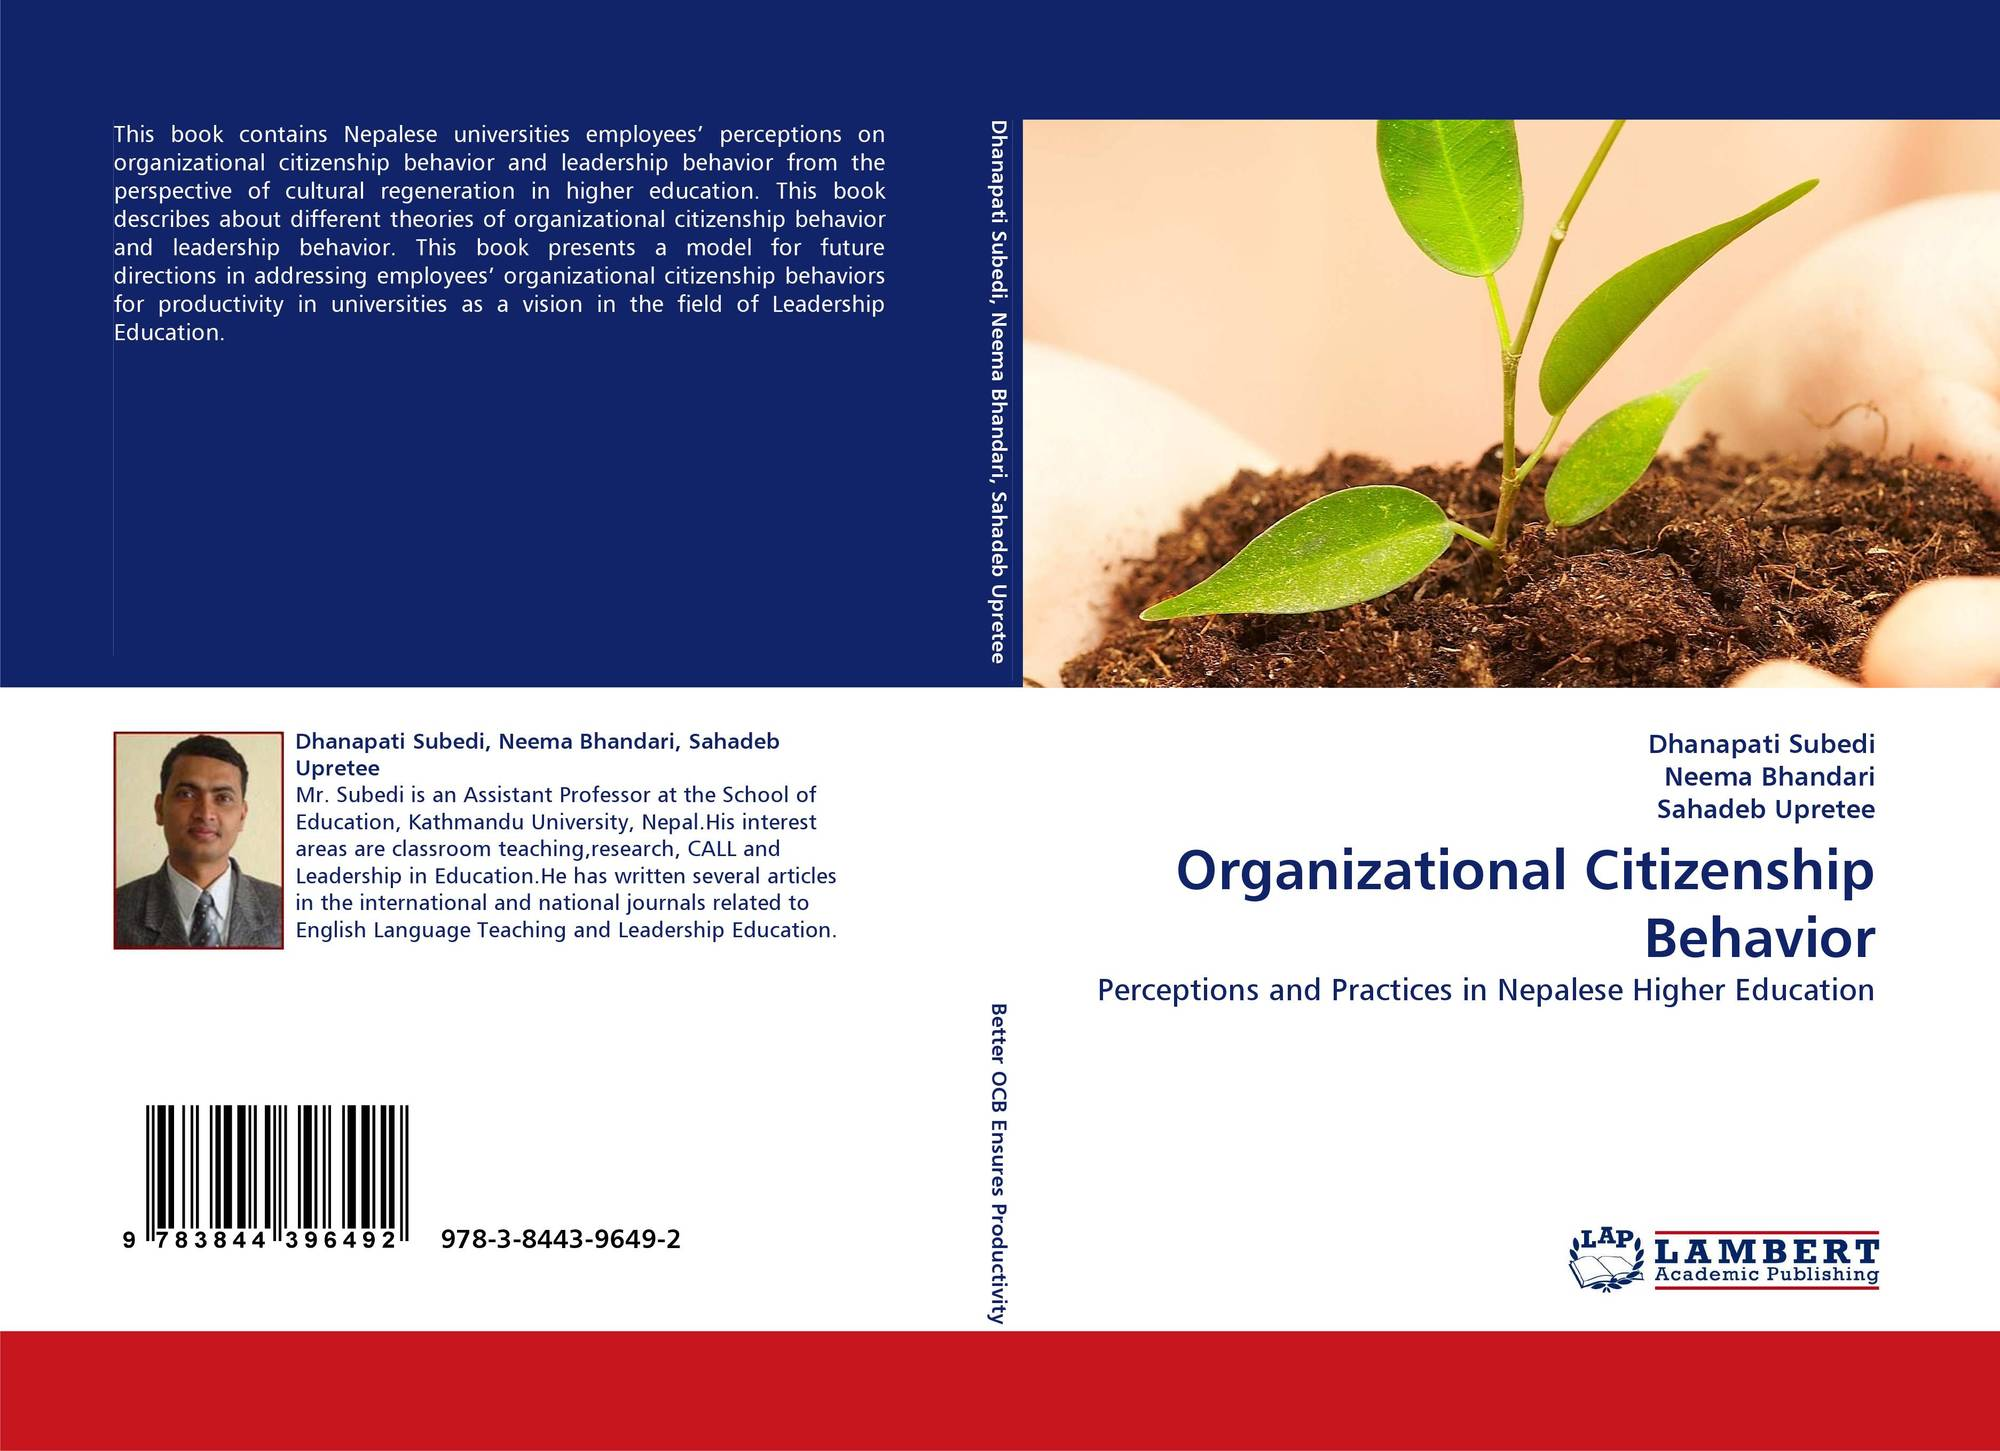 thesis on organizational citizenship behavior In industrial and organizational psychology, organizational citizenship behavior (ocb) is a person's voluntary commitment within an organization or company that is.